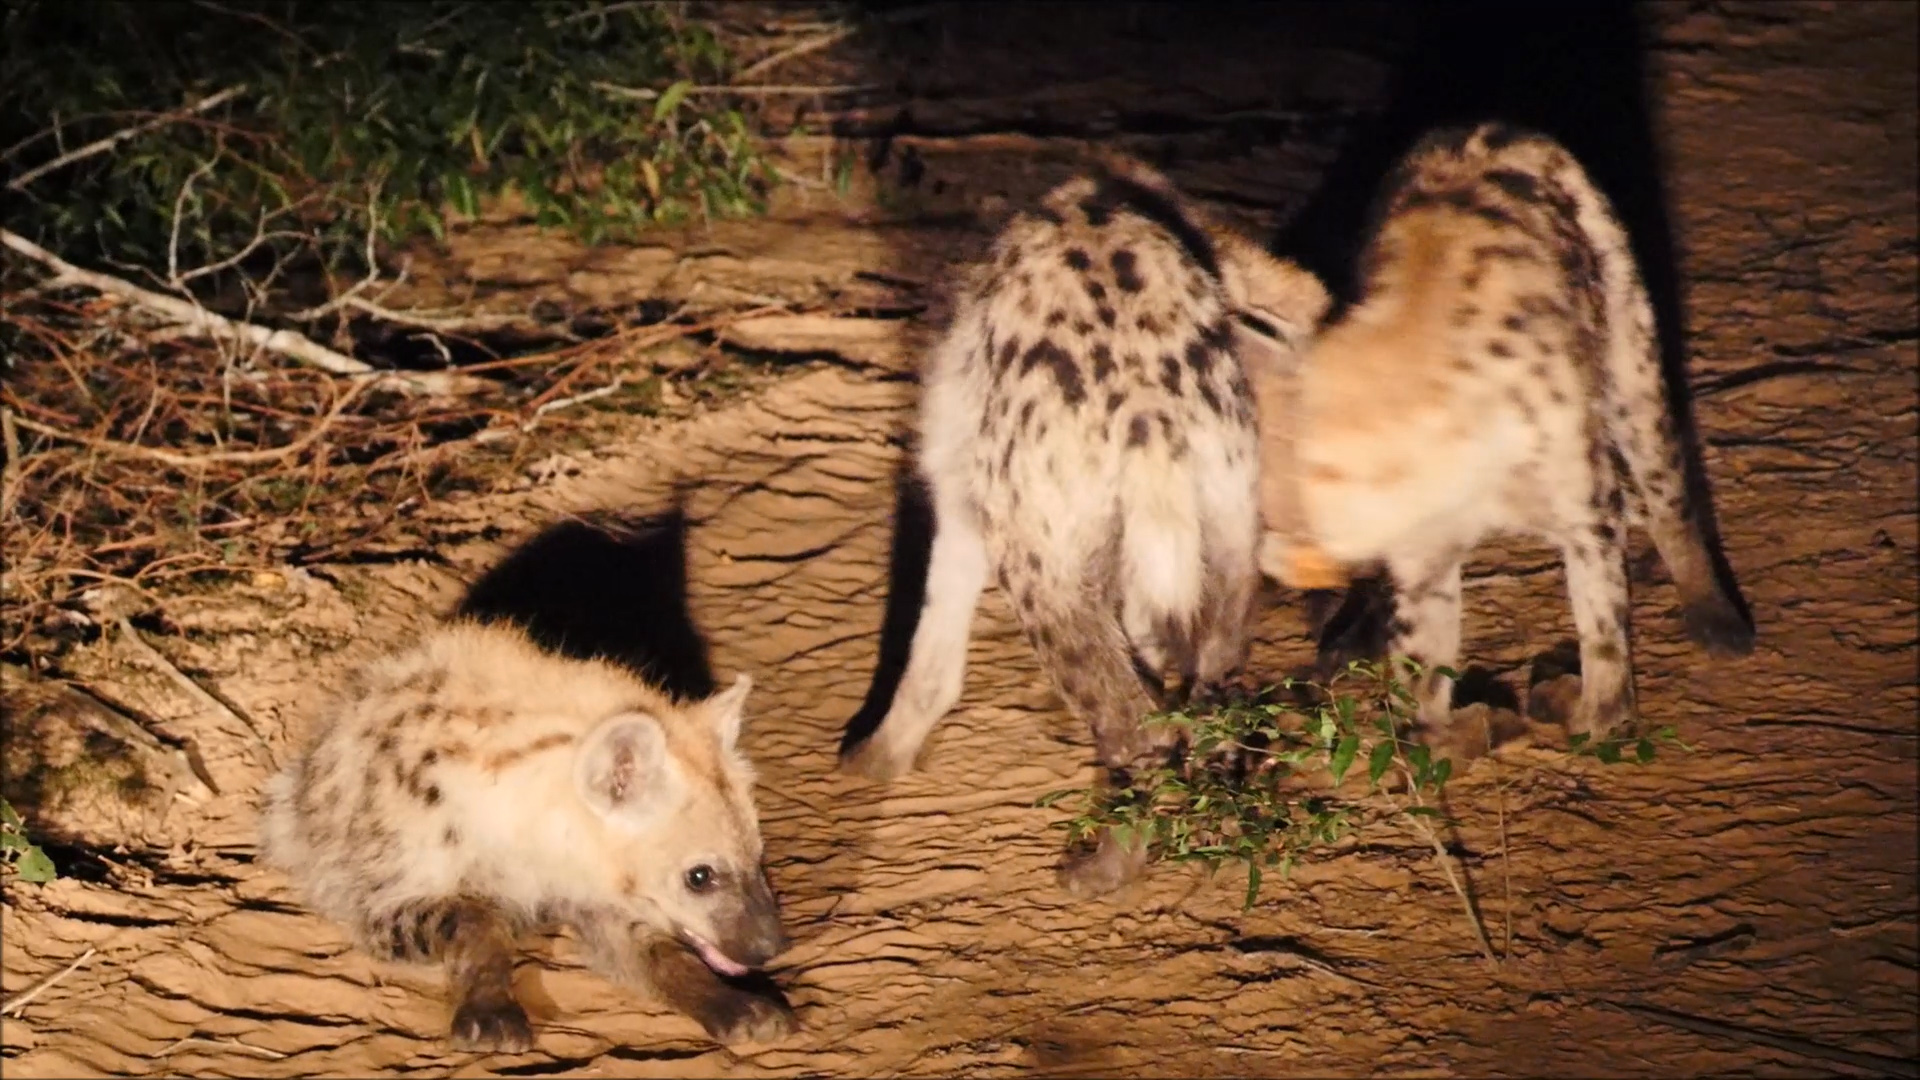 A hyena pup in the foreground, with male hyena #127, the first to be collared.